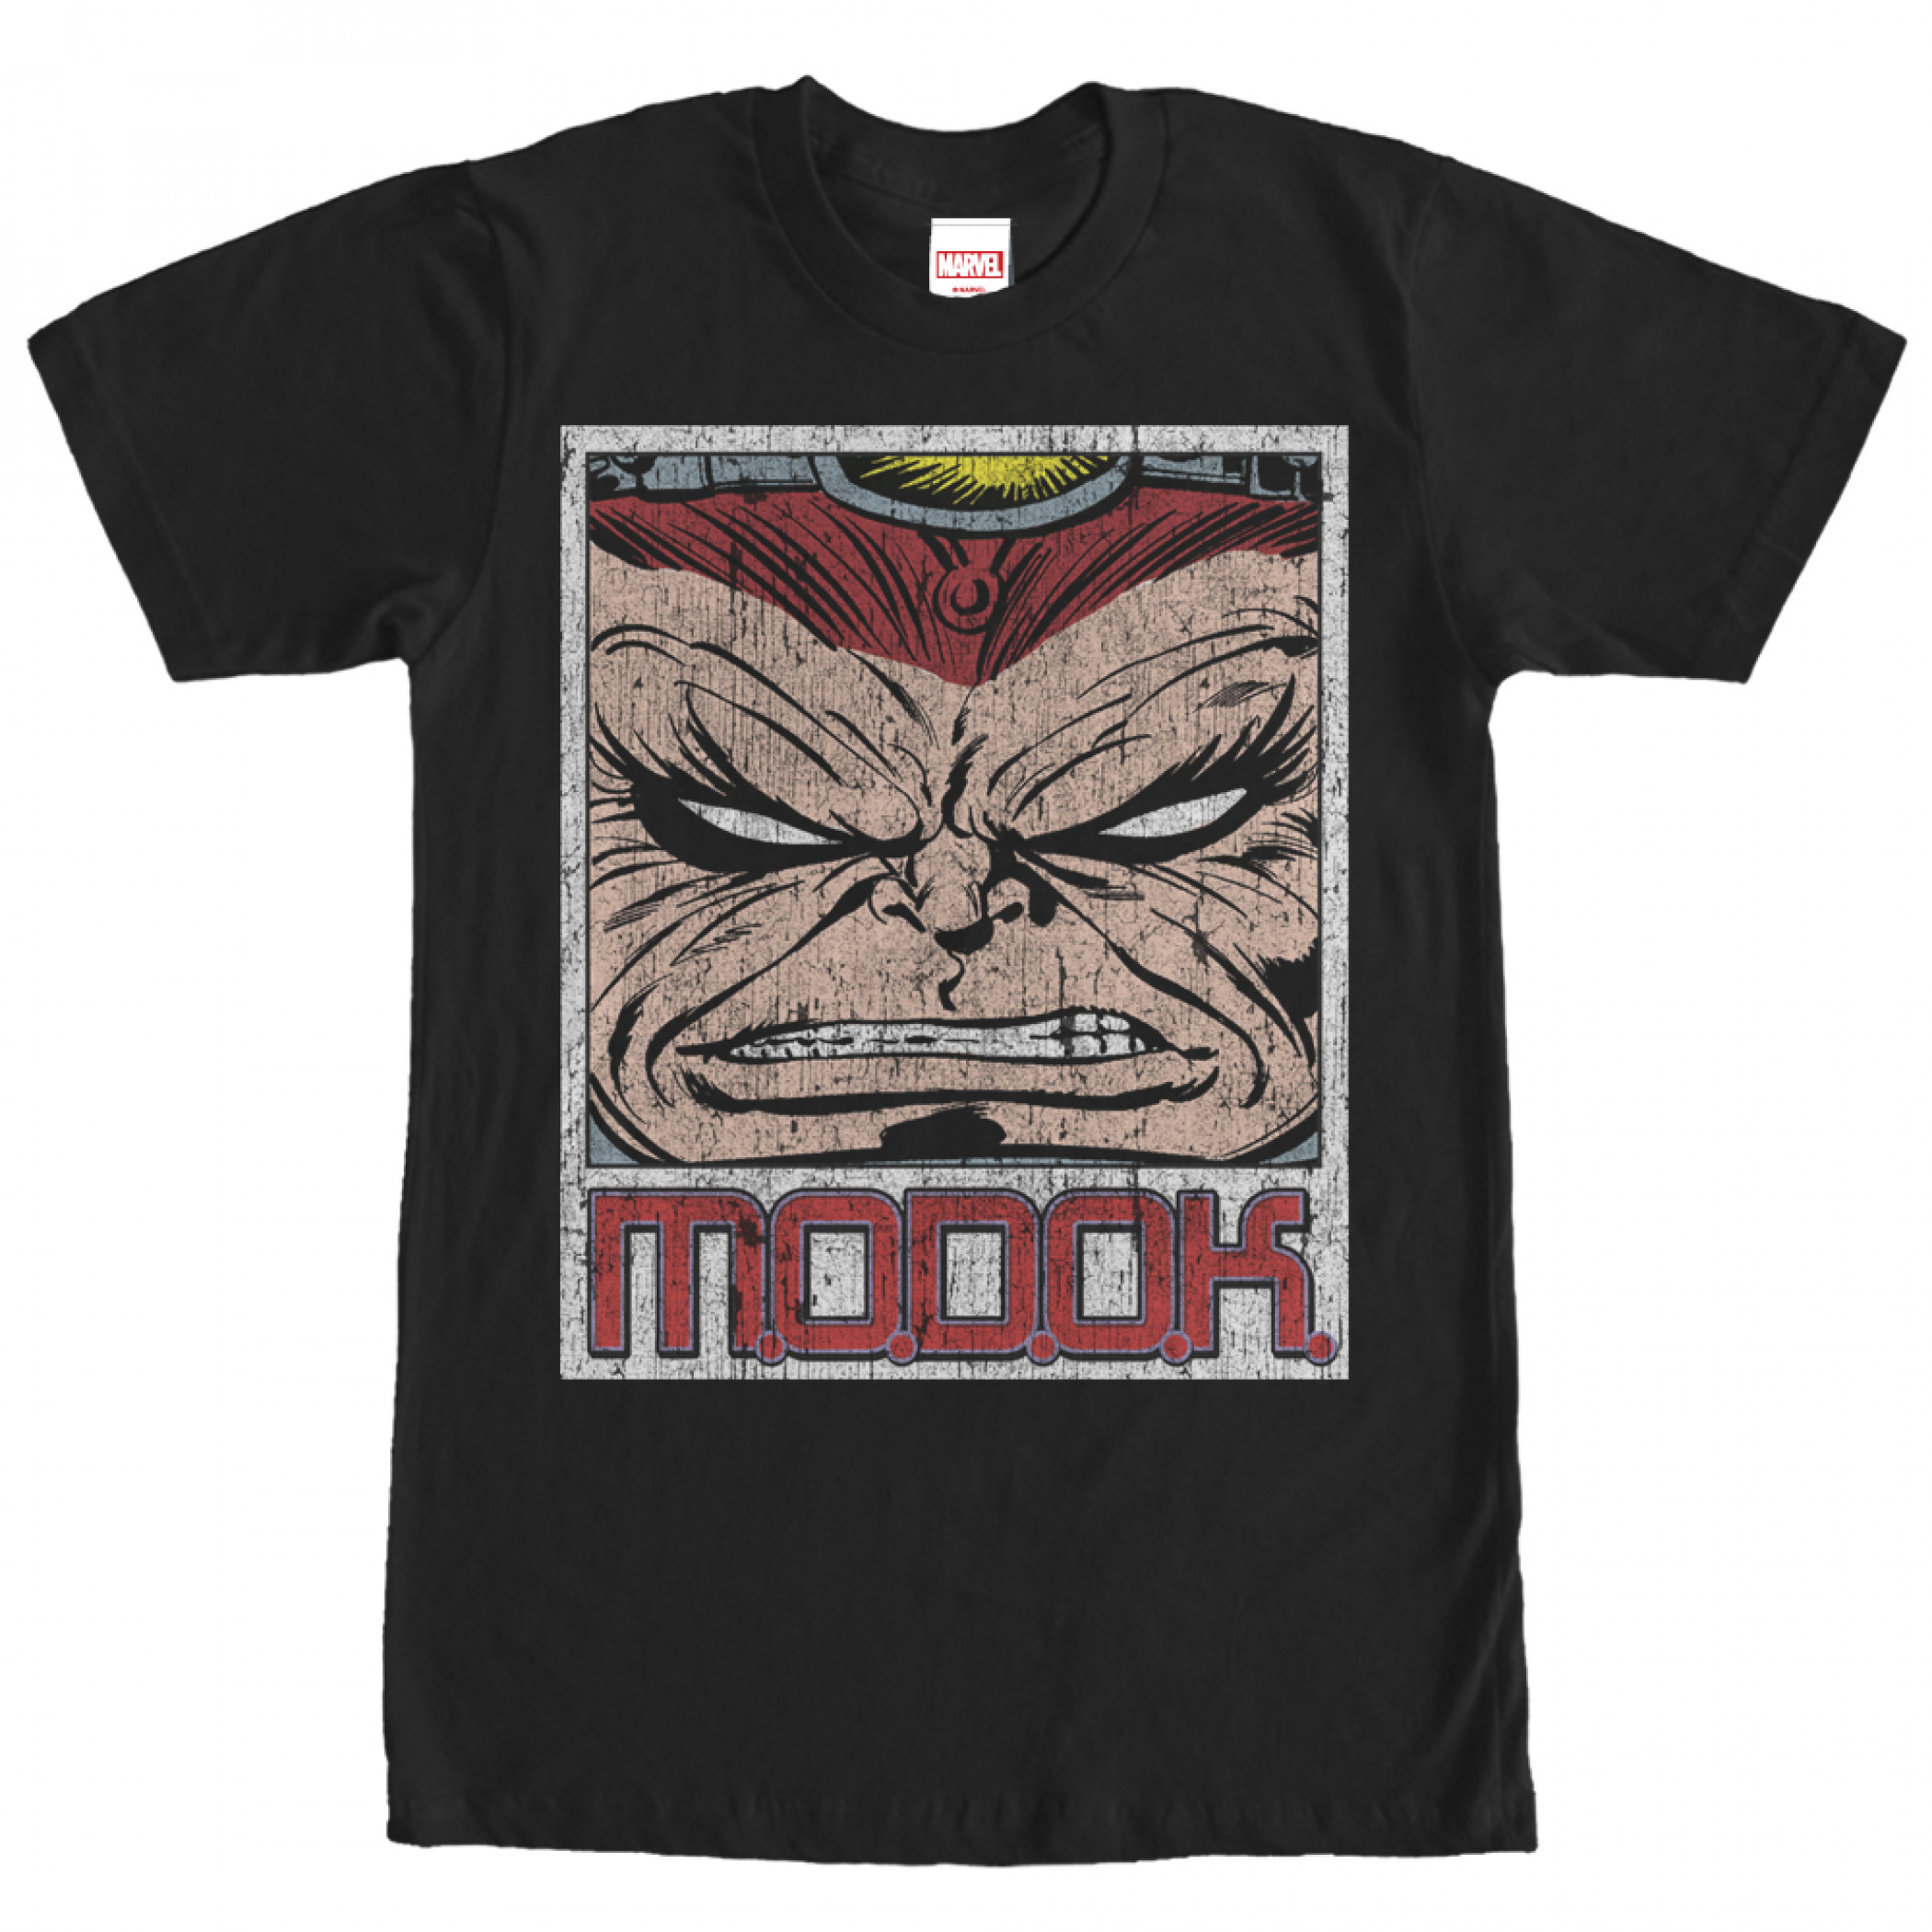 Modok Monstrous Black T-Shirt